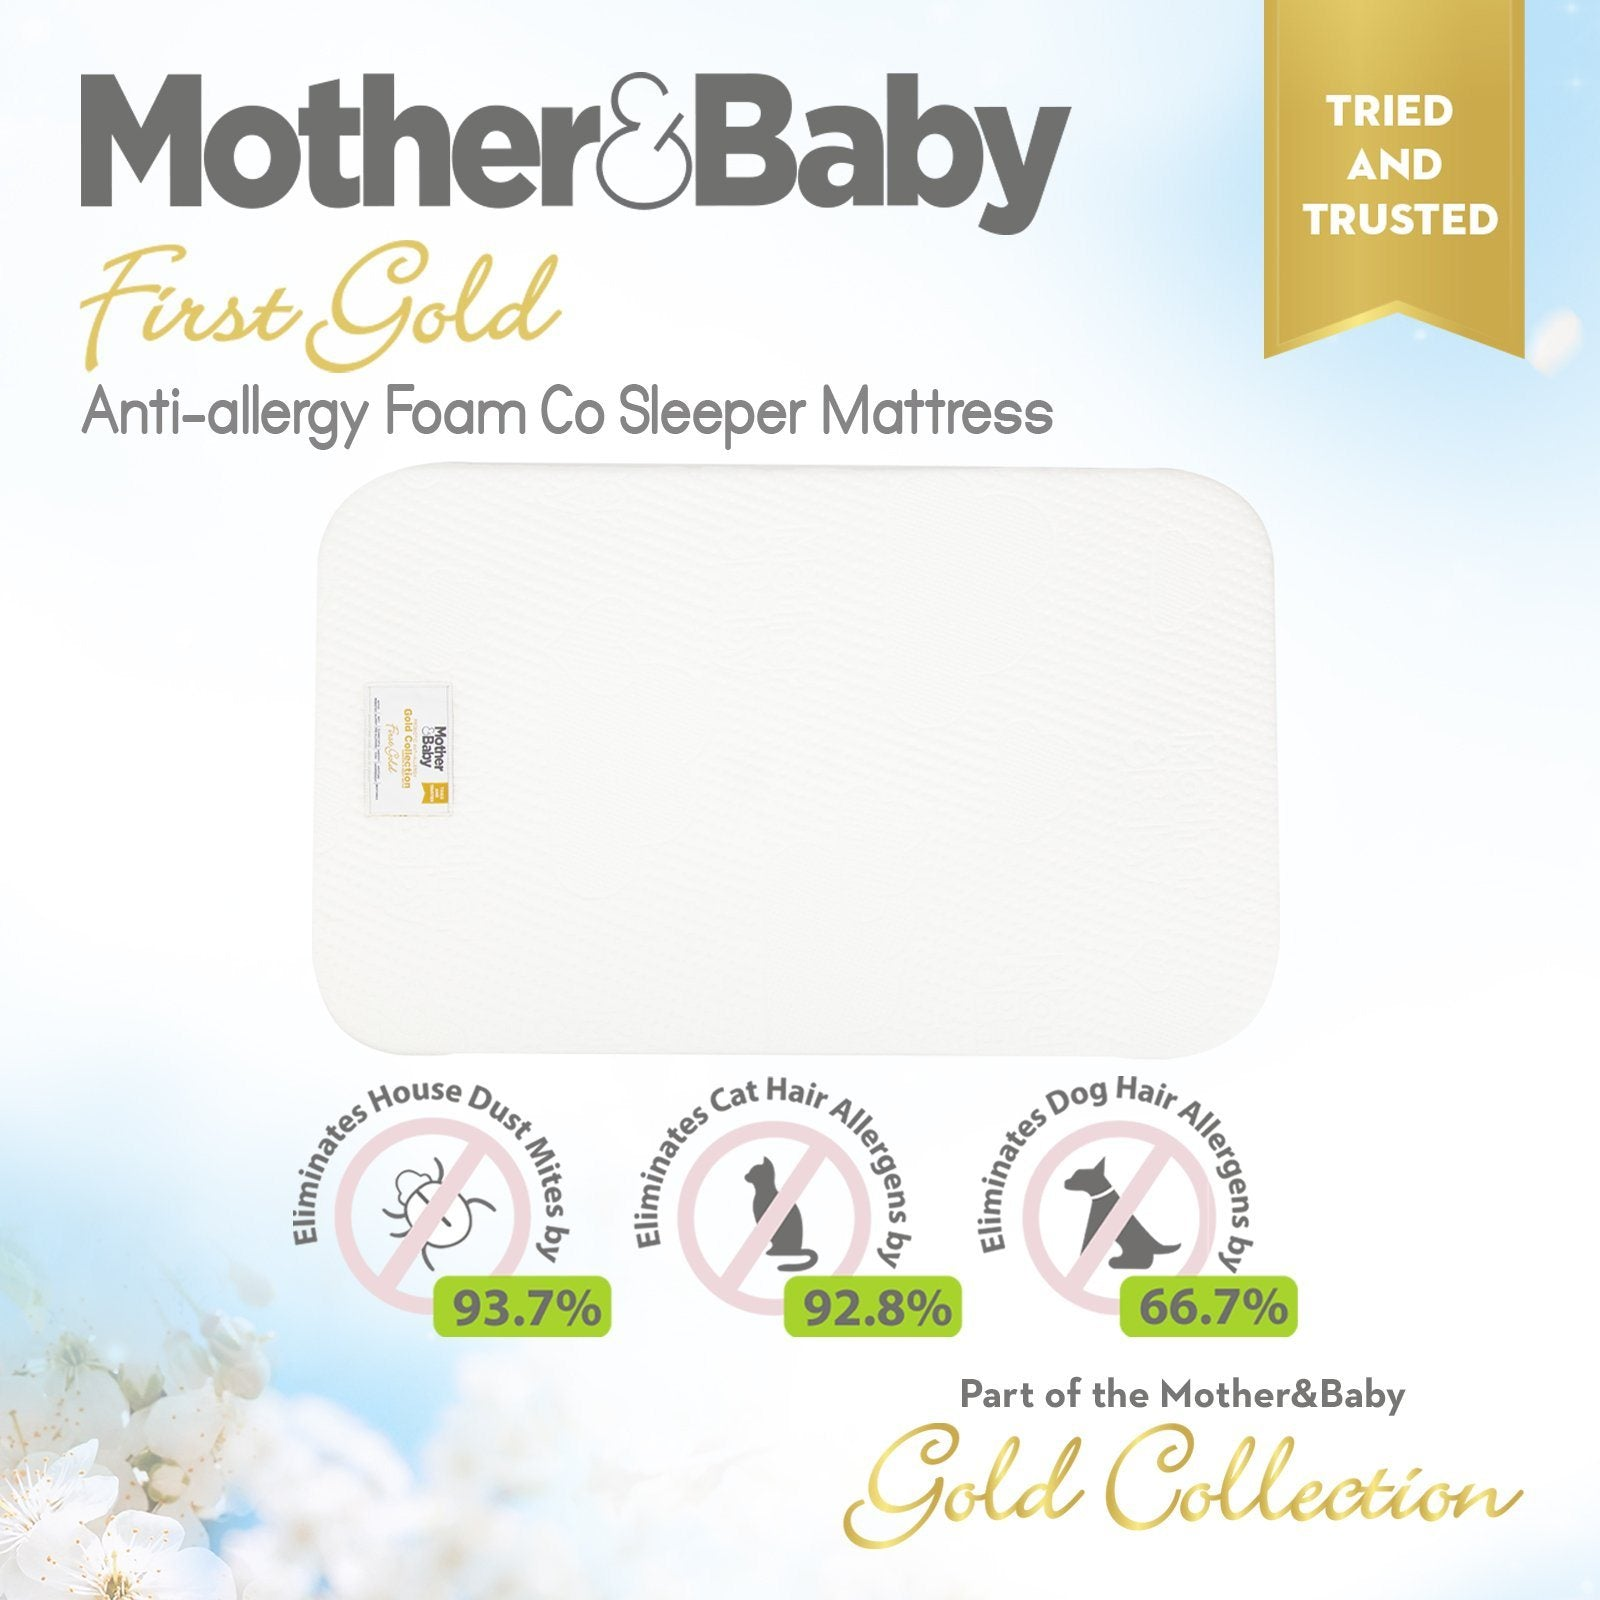 Mother&Baby First Gold Anti-Allergy Foam Co-Sleeper Mattress 83 x 50cm Mother & Baby